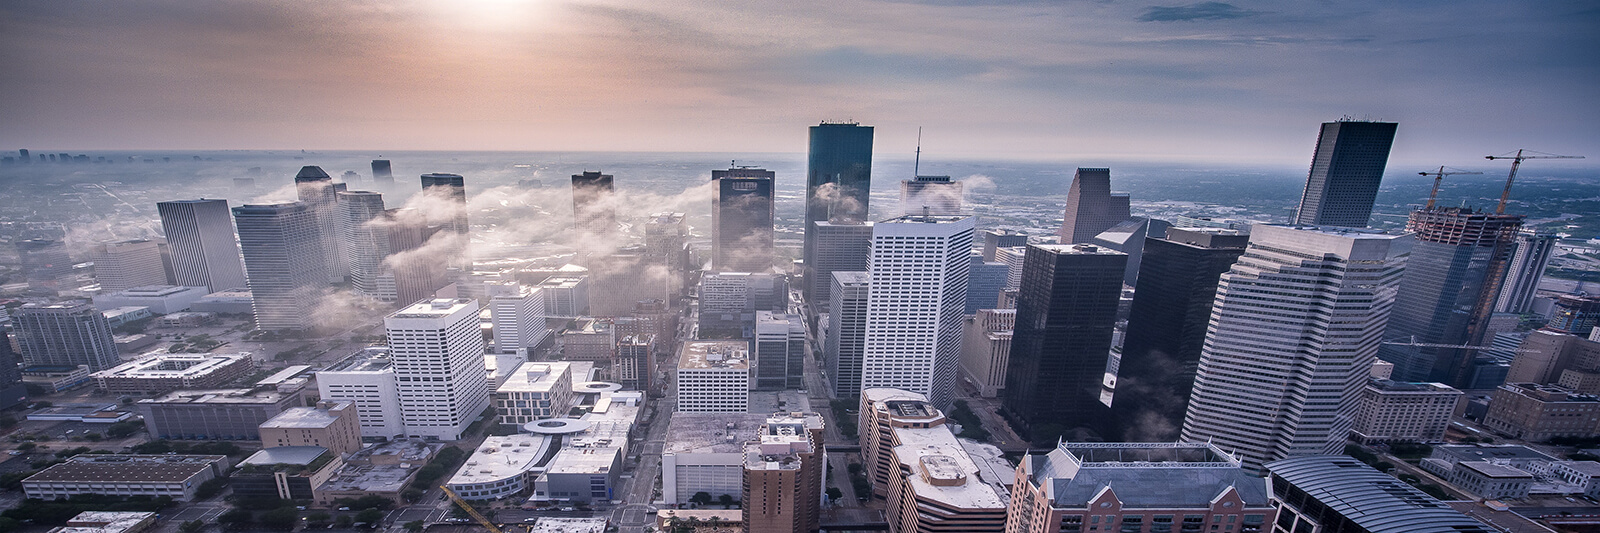 Aerial view of downtown Houston, Texas during sunrise